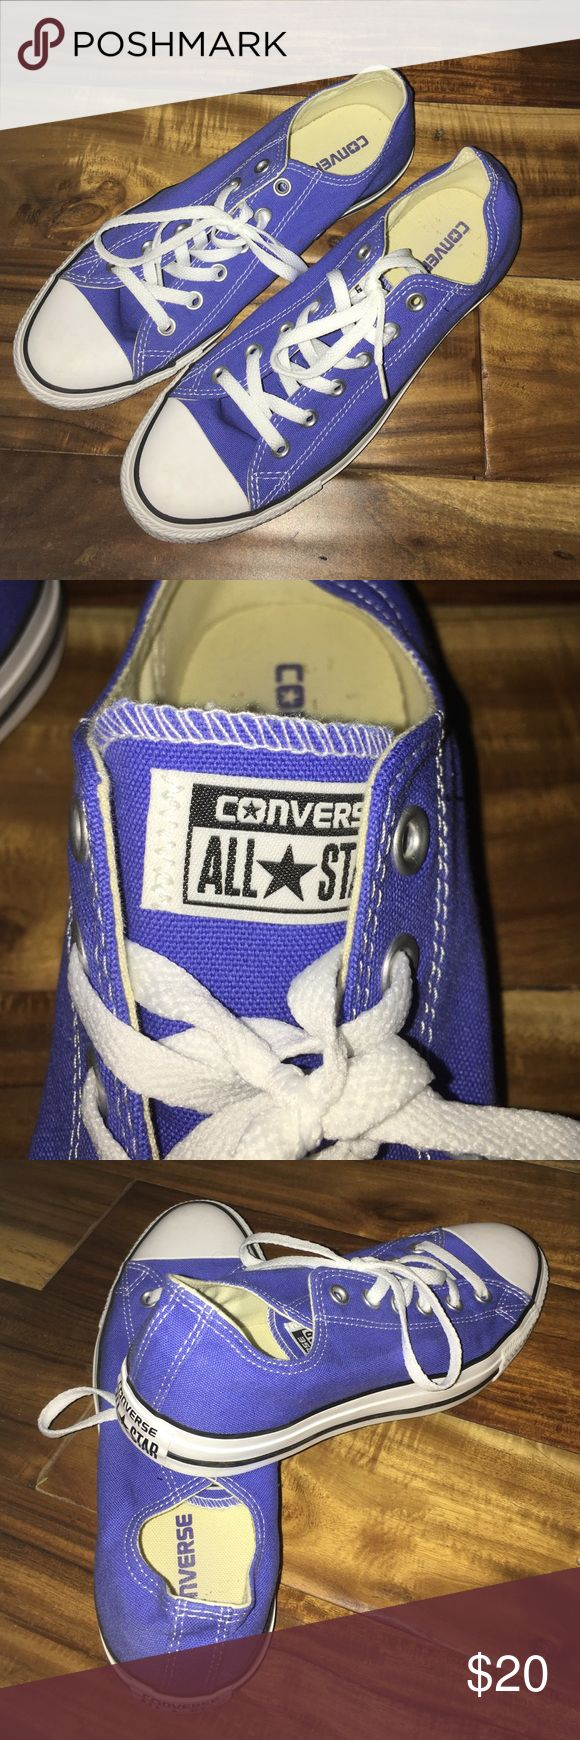 Converse Classic Sneakers Converse in Blue/Purple Shade. Never Worn. Send me an offer! Cheaper price available on converse bundles Converse Shoes Sneakers